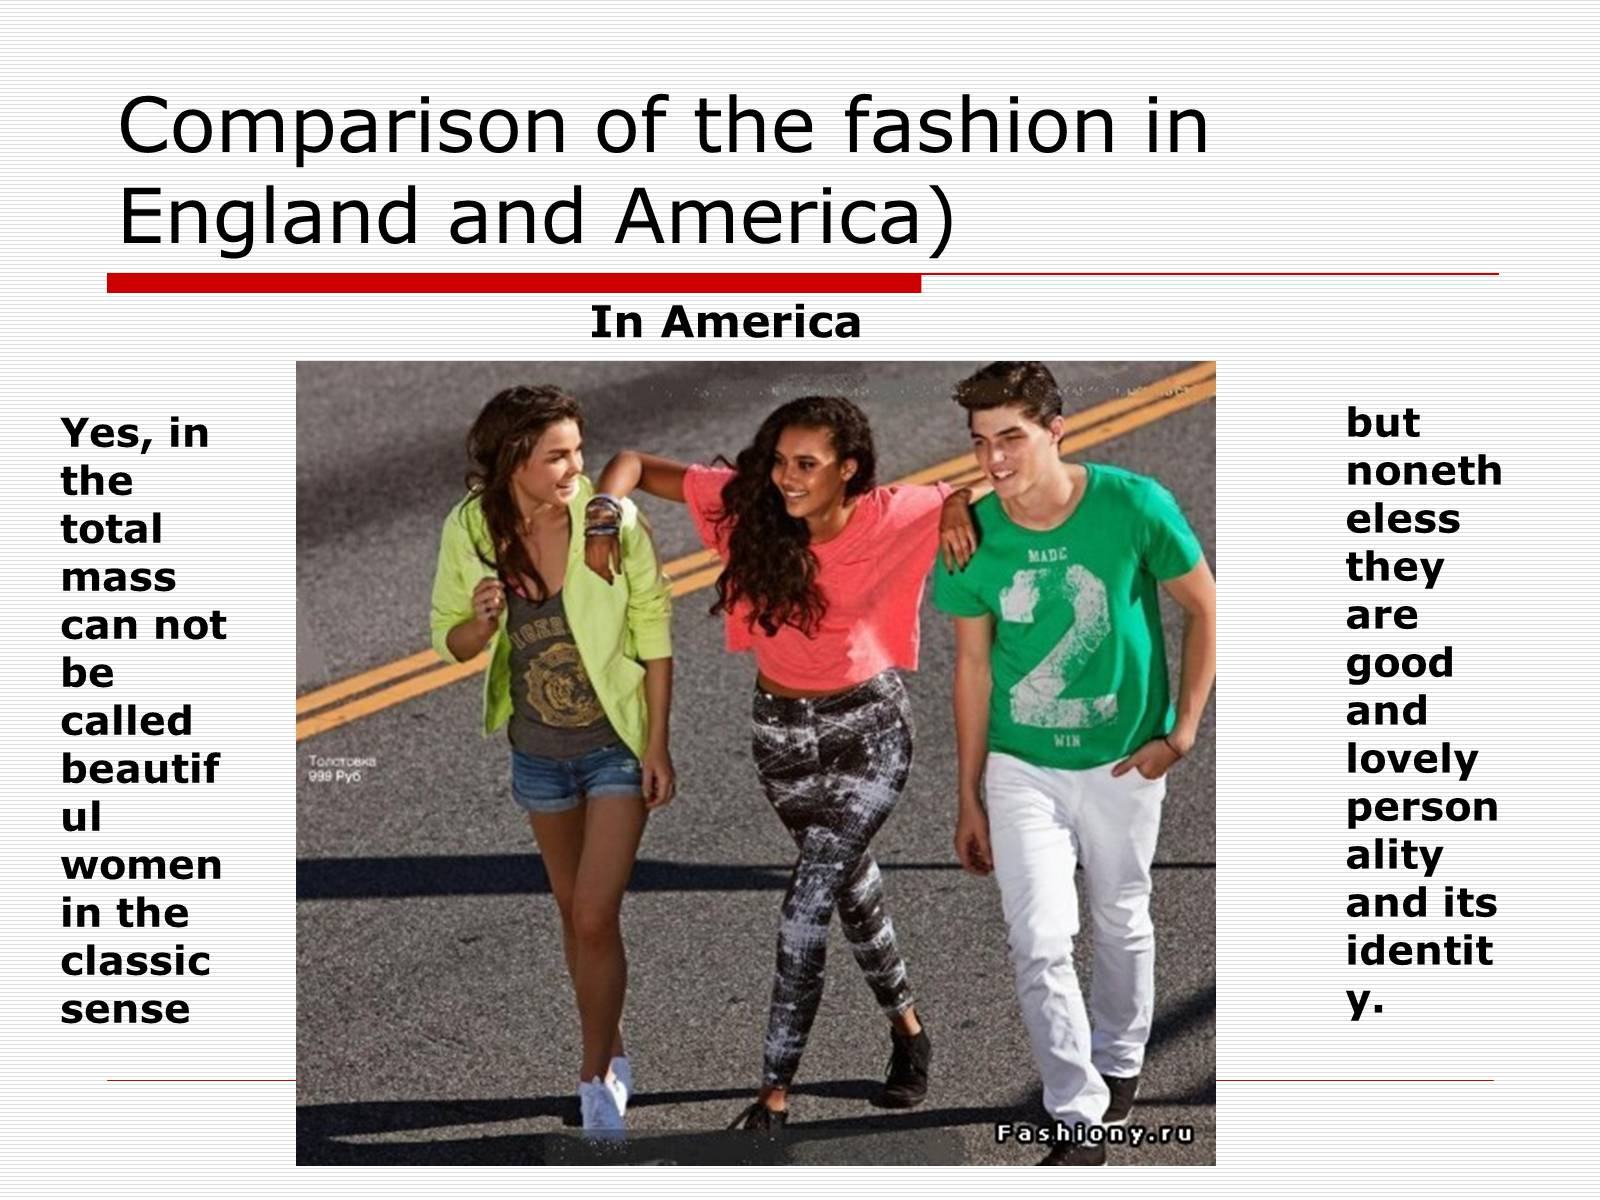 Презентація на тему «Comparison of the fashion in England and America» - Слайд #40